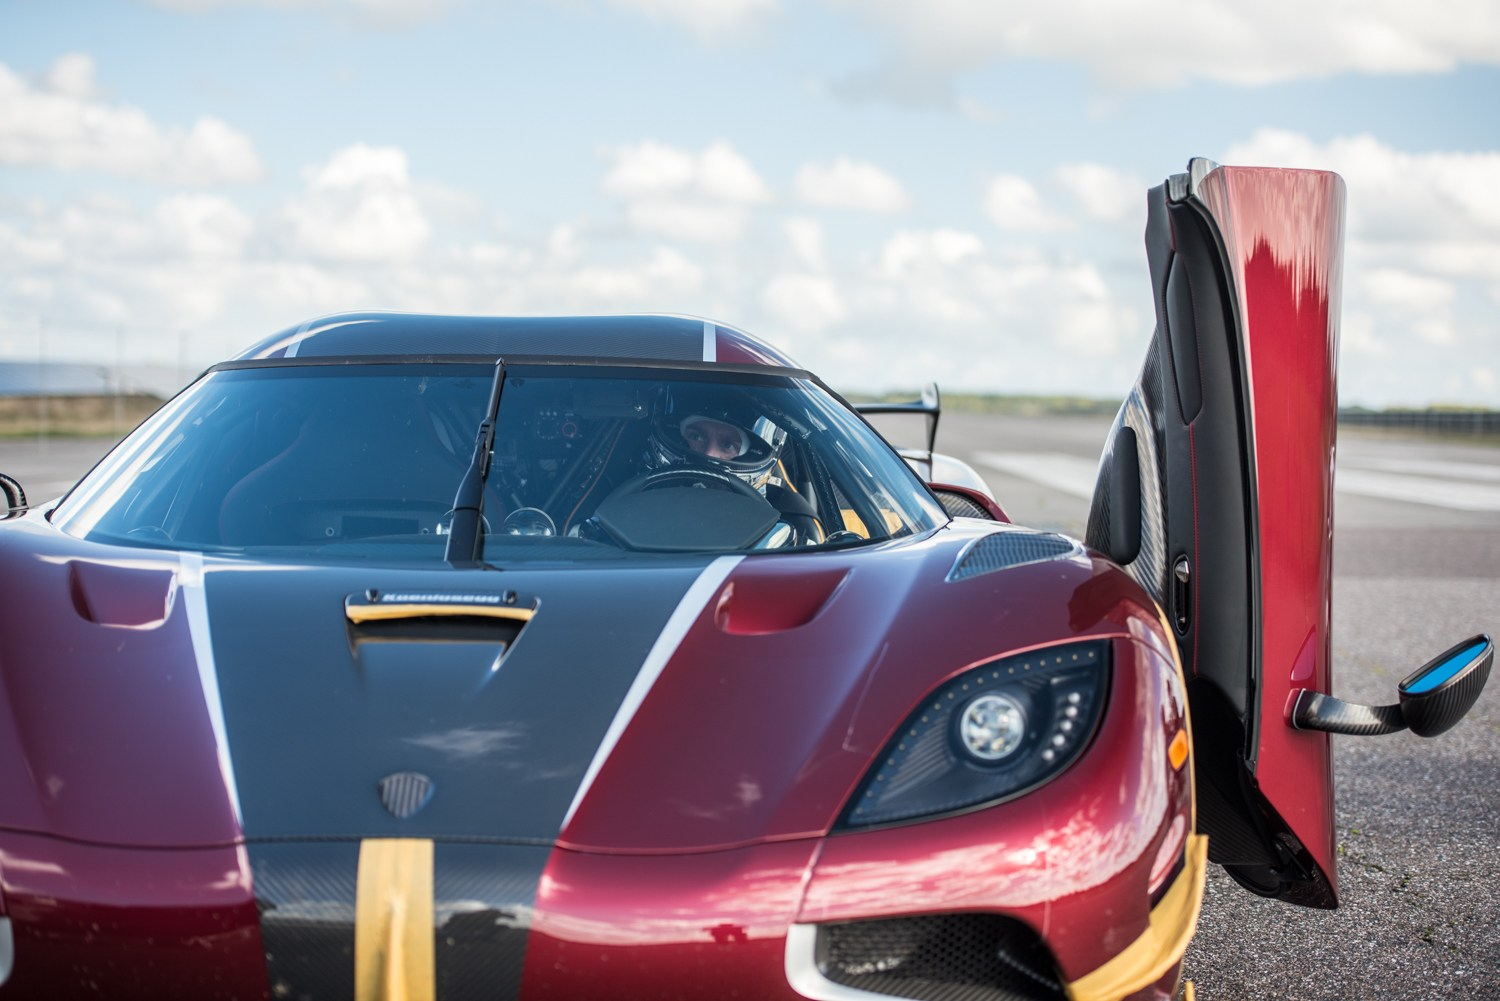 KOENIGSEGG AGERA RS COMPLETES 0-400-0 KM/H IN 36.44 SECONDS